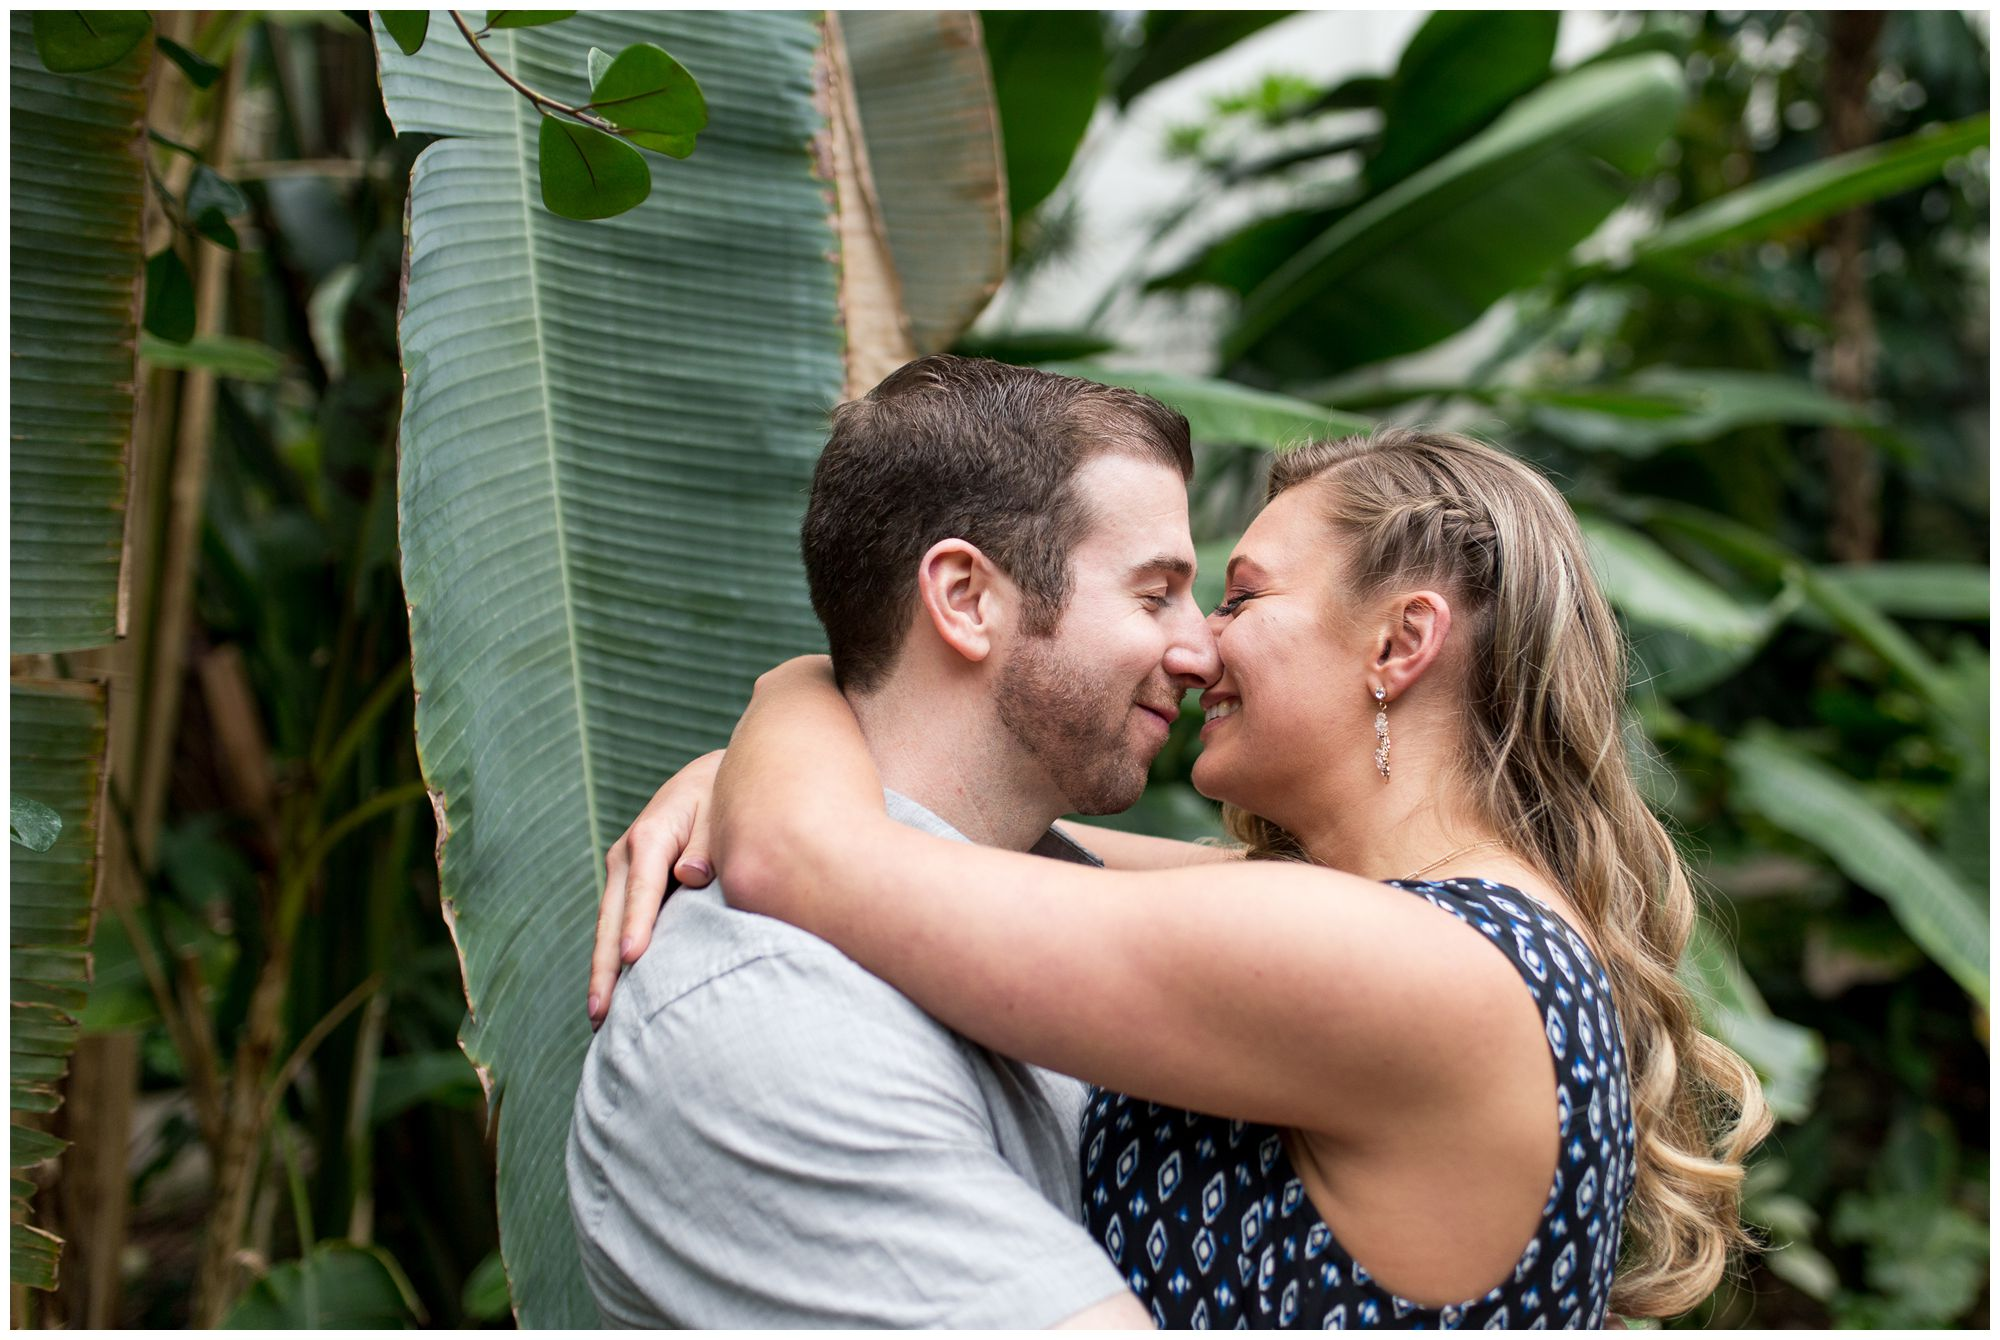 Fort Wayne wedding photographer engagement session at Foellinger-Freimann Botanical Conservatory